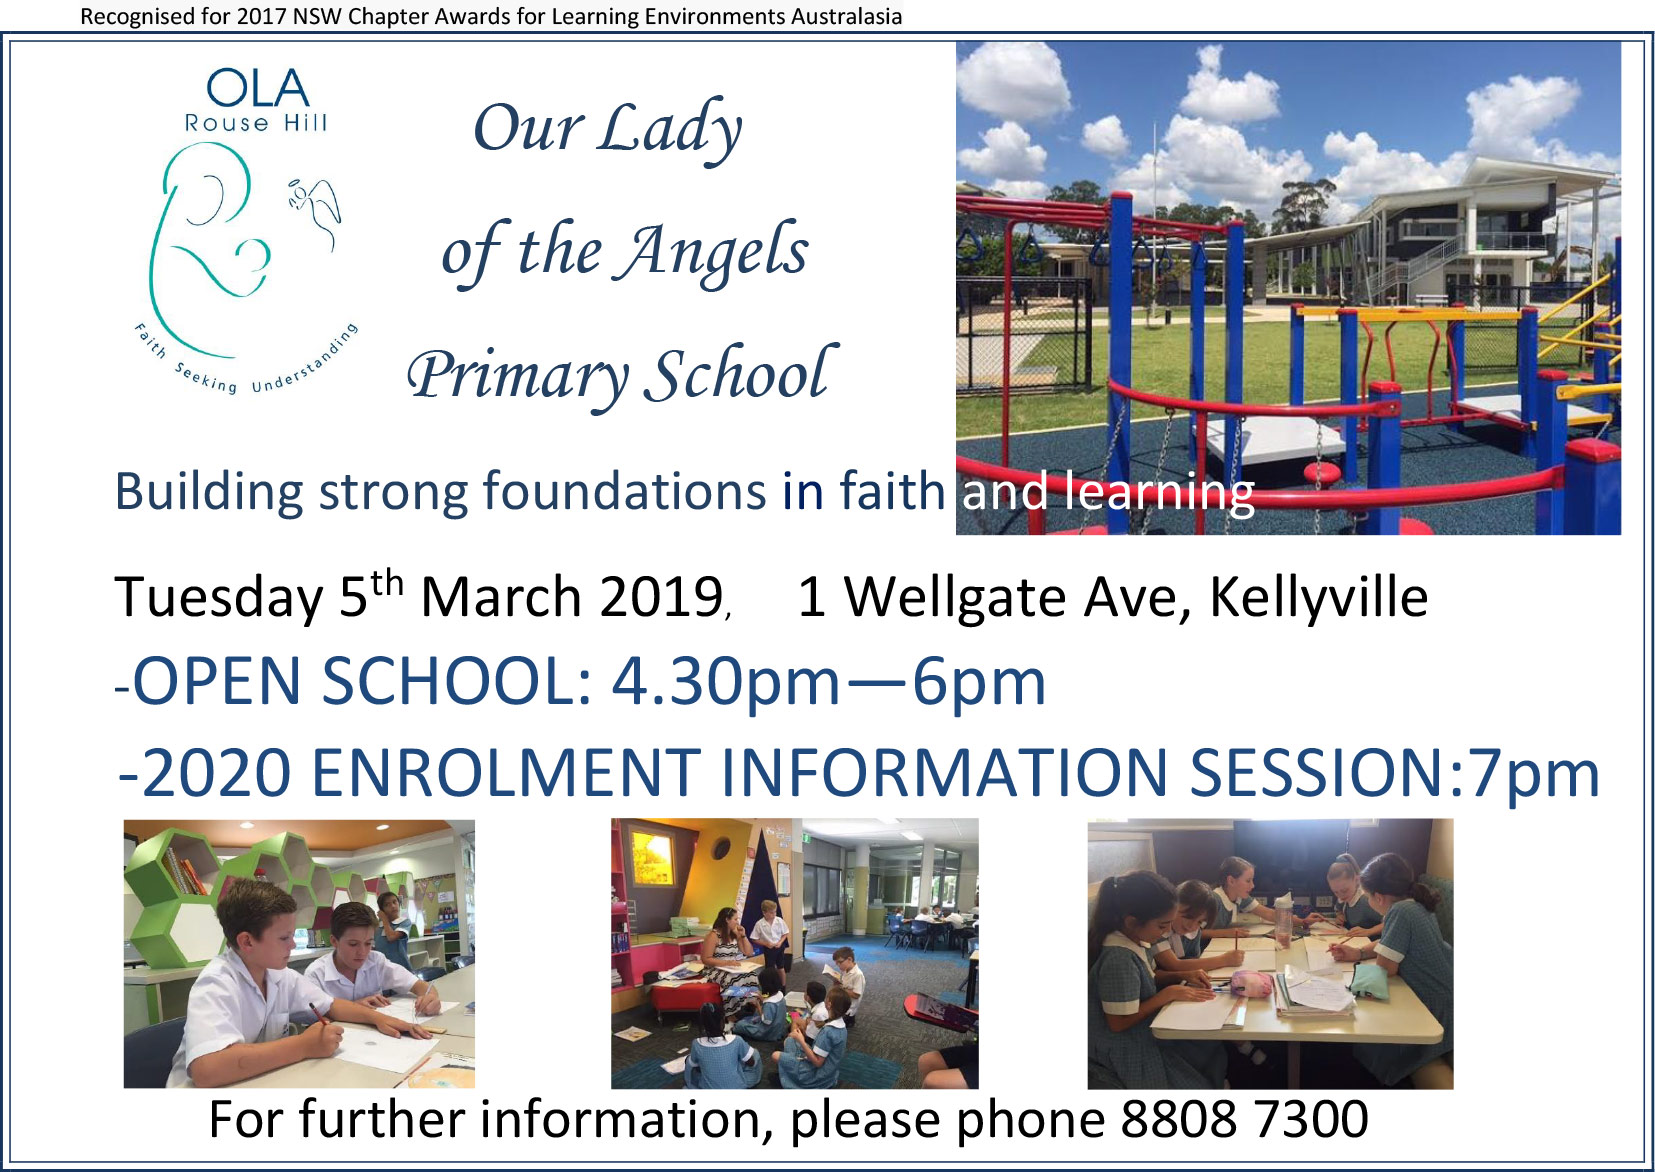 OLA Open Day Tuesday 5th March 2019 4:30pm to 6pm